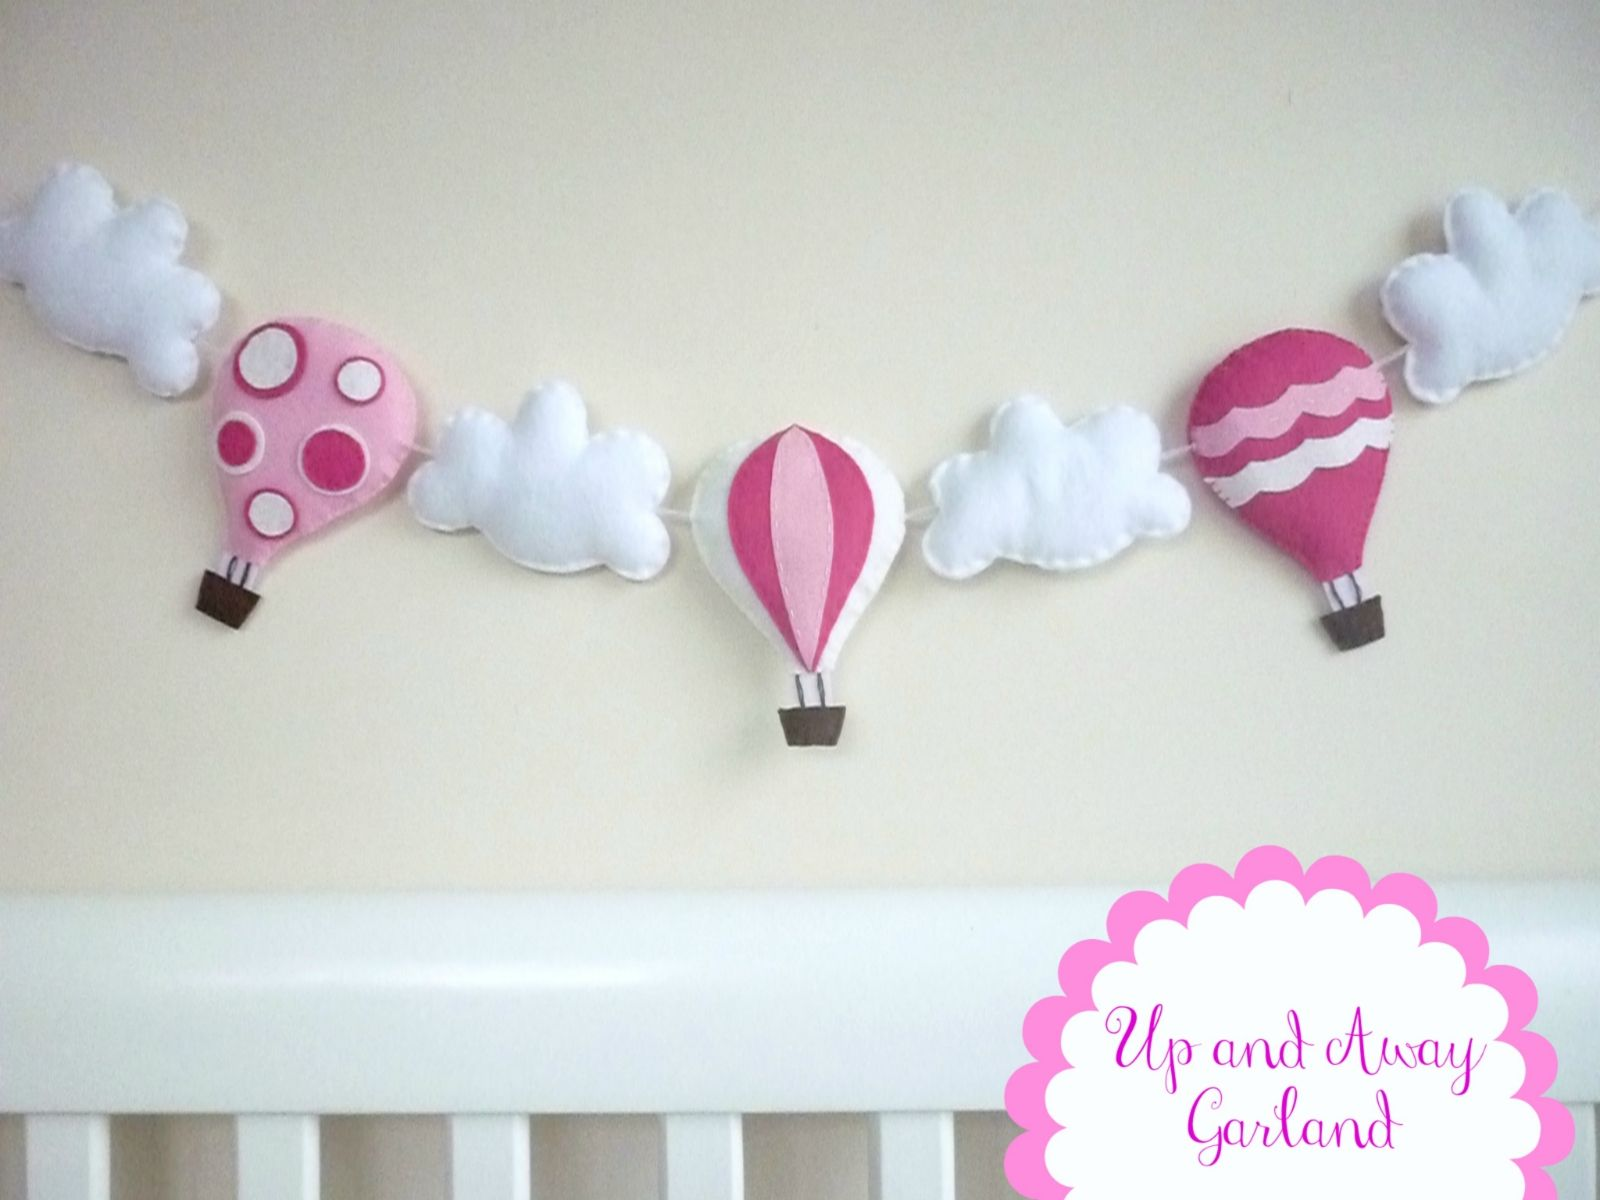 Hot Air Balloon Garland - Bunting - Banner - Bubblegum Pink, Snow White and Hot Pink - Moveable